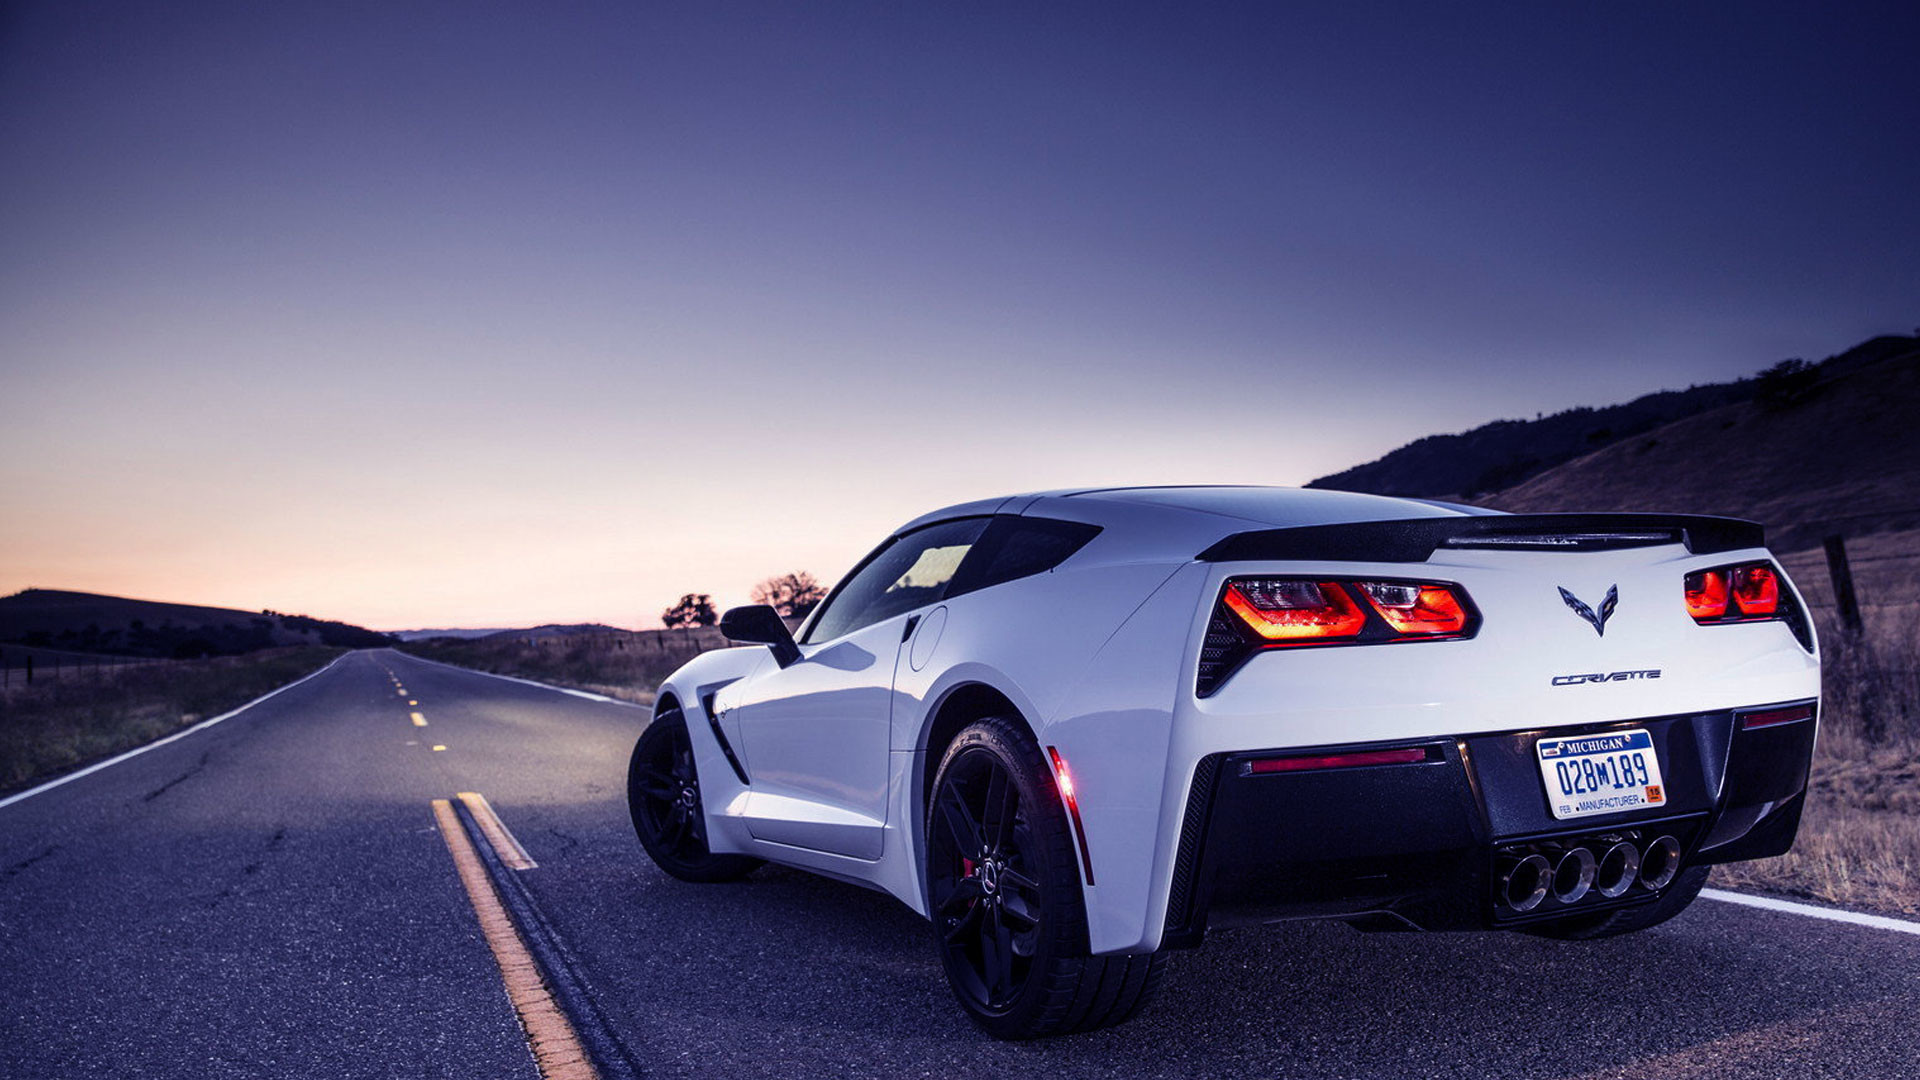 Corvette Stingray 2018 Wallpaper Hd 74 Images